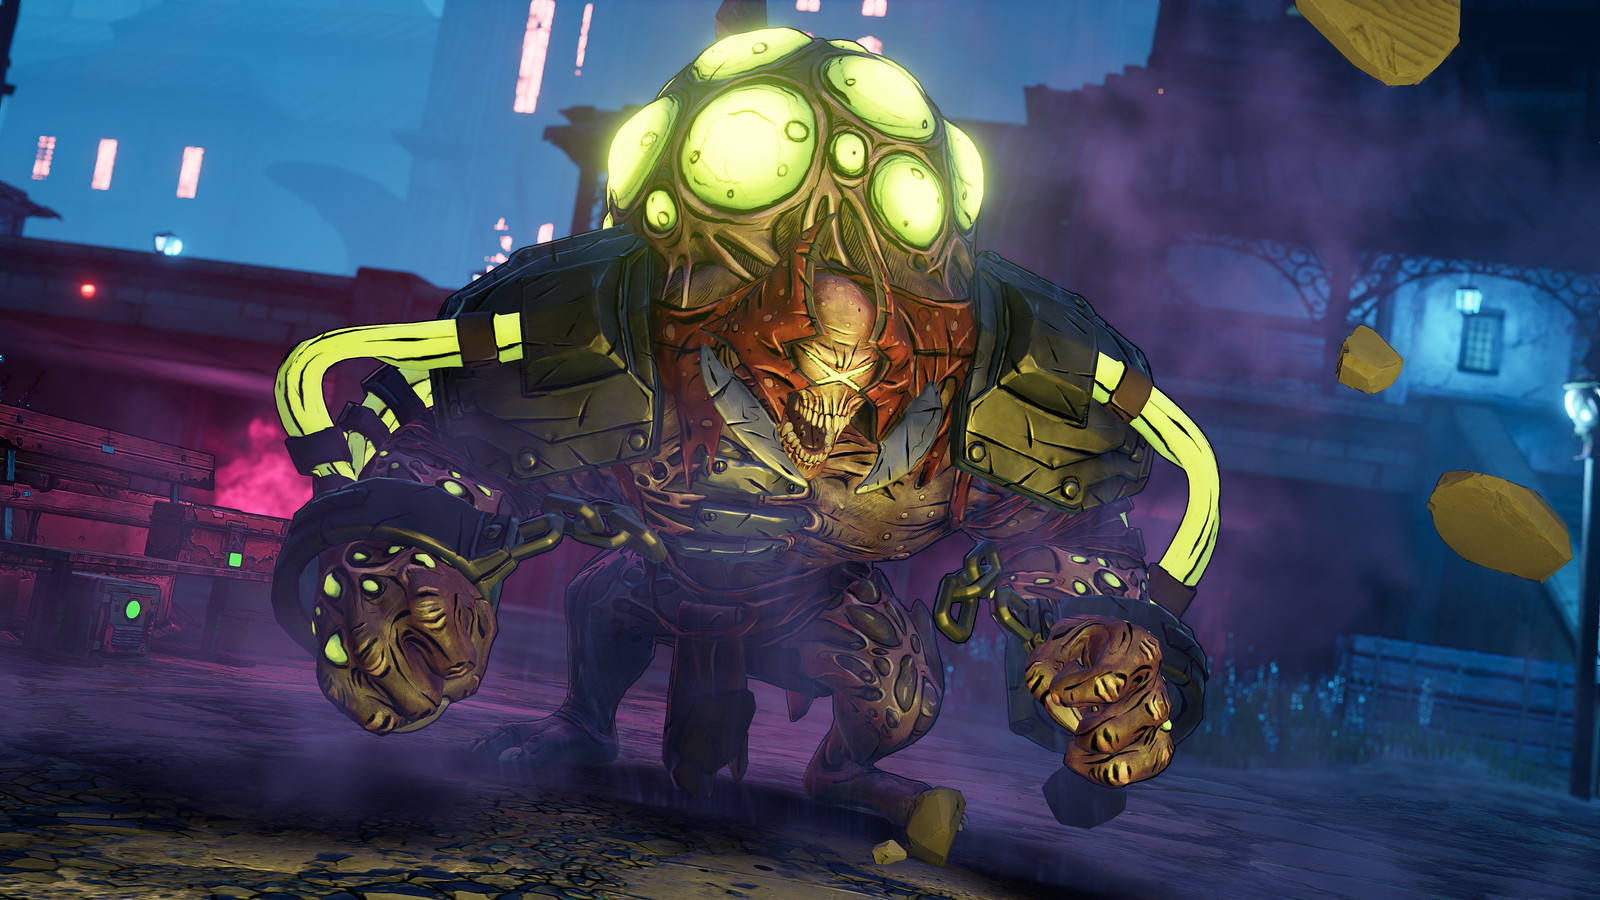 Borderlands 3 - Guns, Love, and Tentacles: The Marriage of Wainwright & Hammerlock